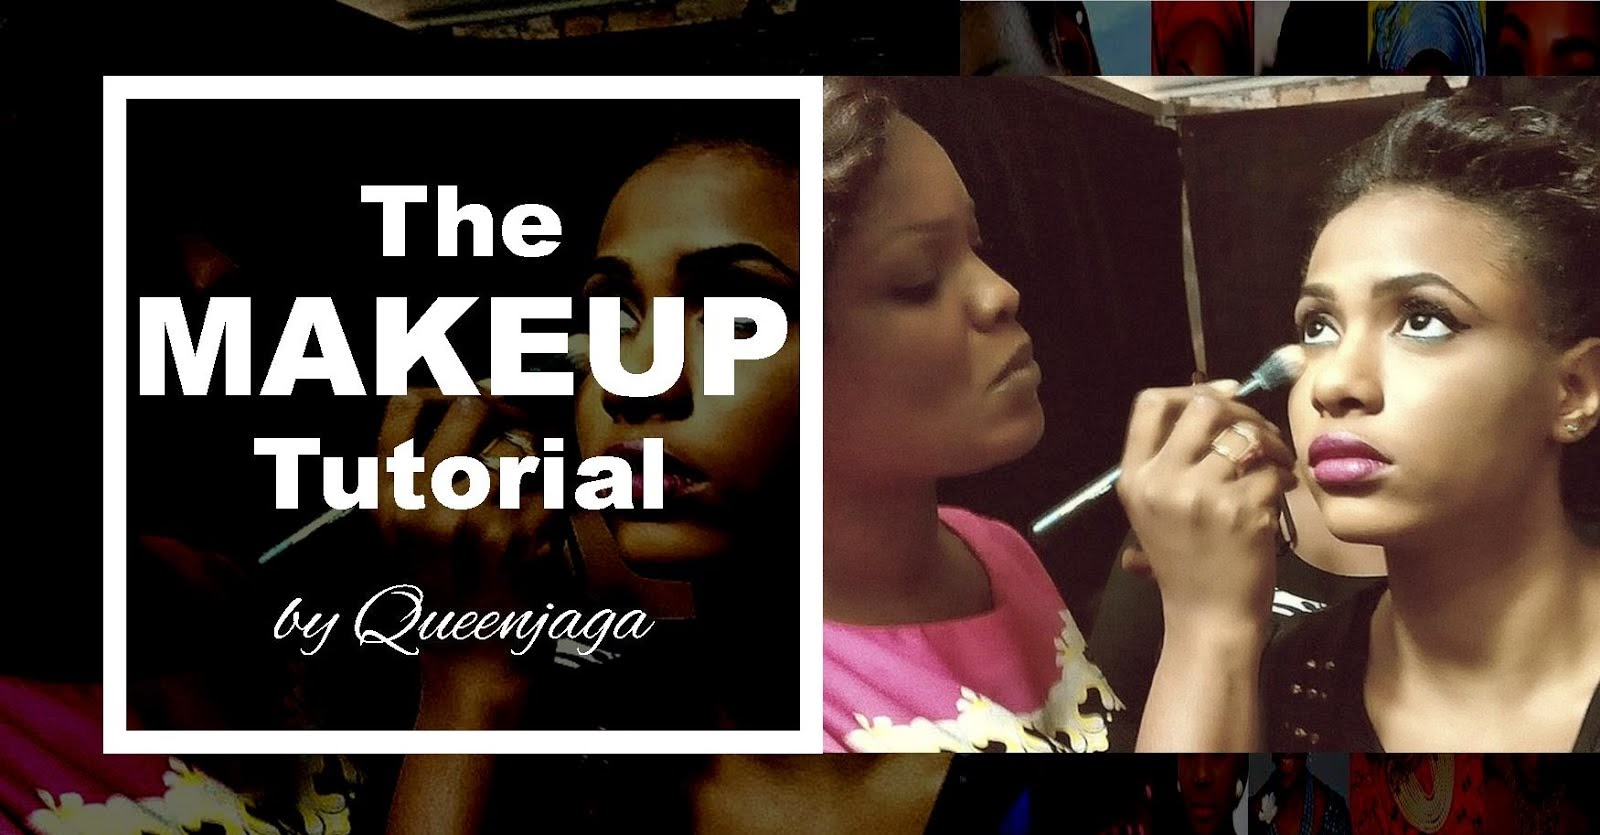 The Makeup Tutorial by Queenjaga